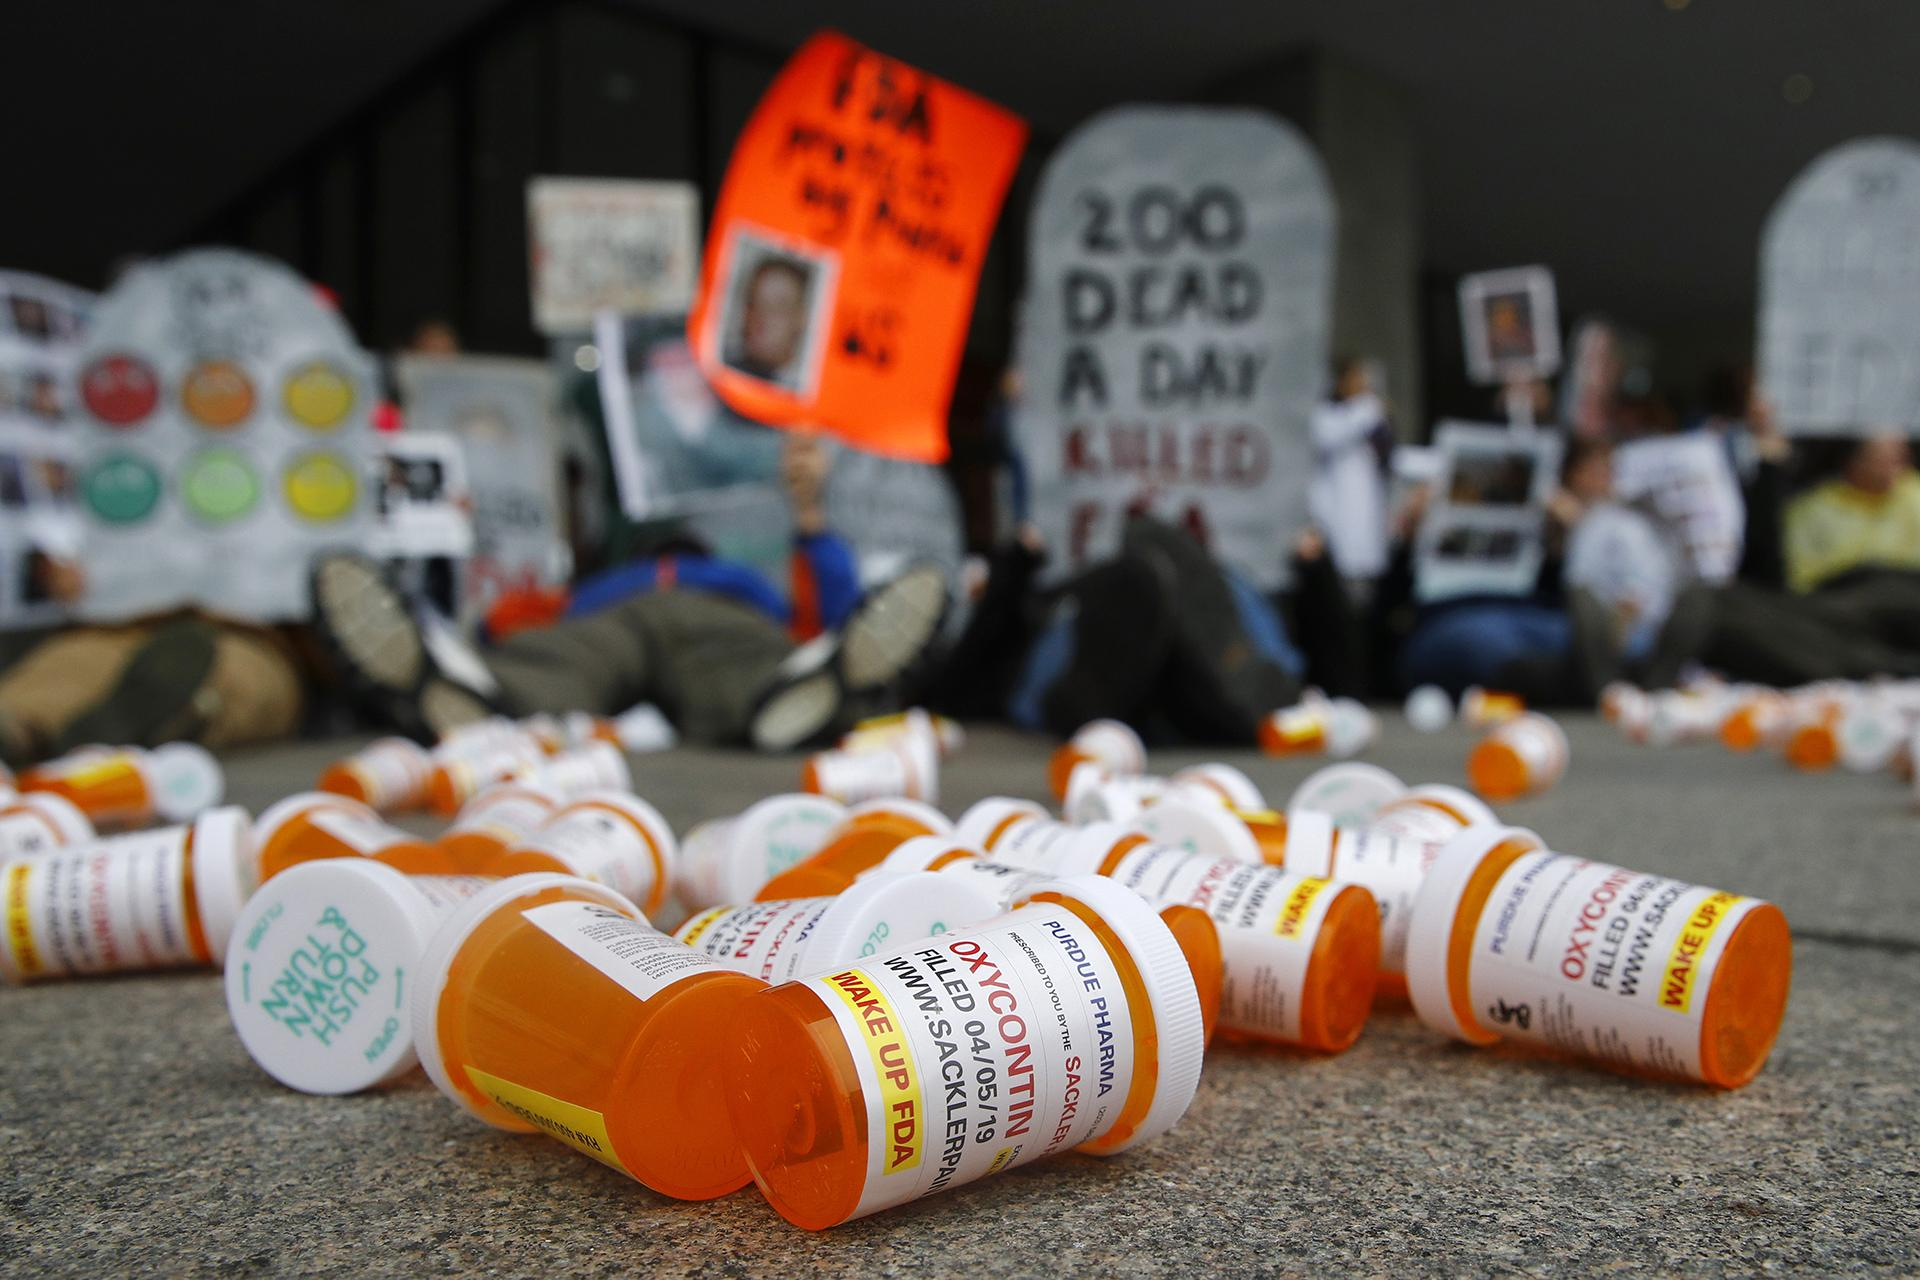 In this April 5, 2019, file photo, containers depicting OxyContin prescription pill bottles lie on the ground in front of the Department of Health and Human Services' headquarters in Washington as protesters demonstrate against the FDA's opioid prescription drug approval practices. (AP Photo / Patrick Semansky, File)